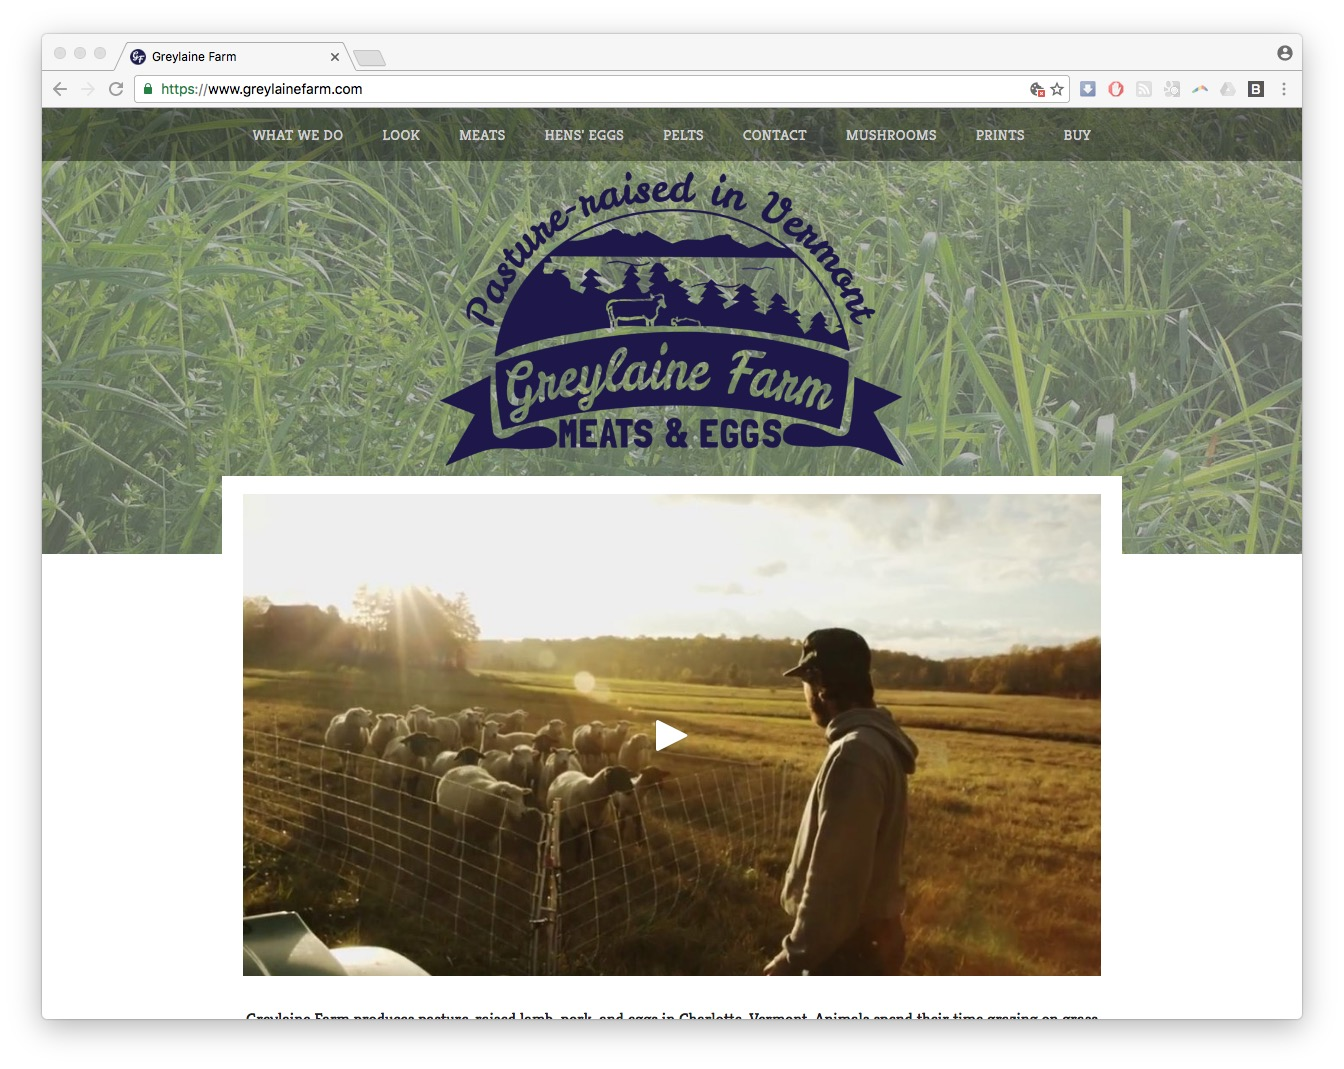 greylaine farm web design squarespace vermont homepage screenshot